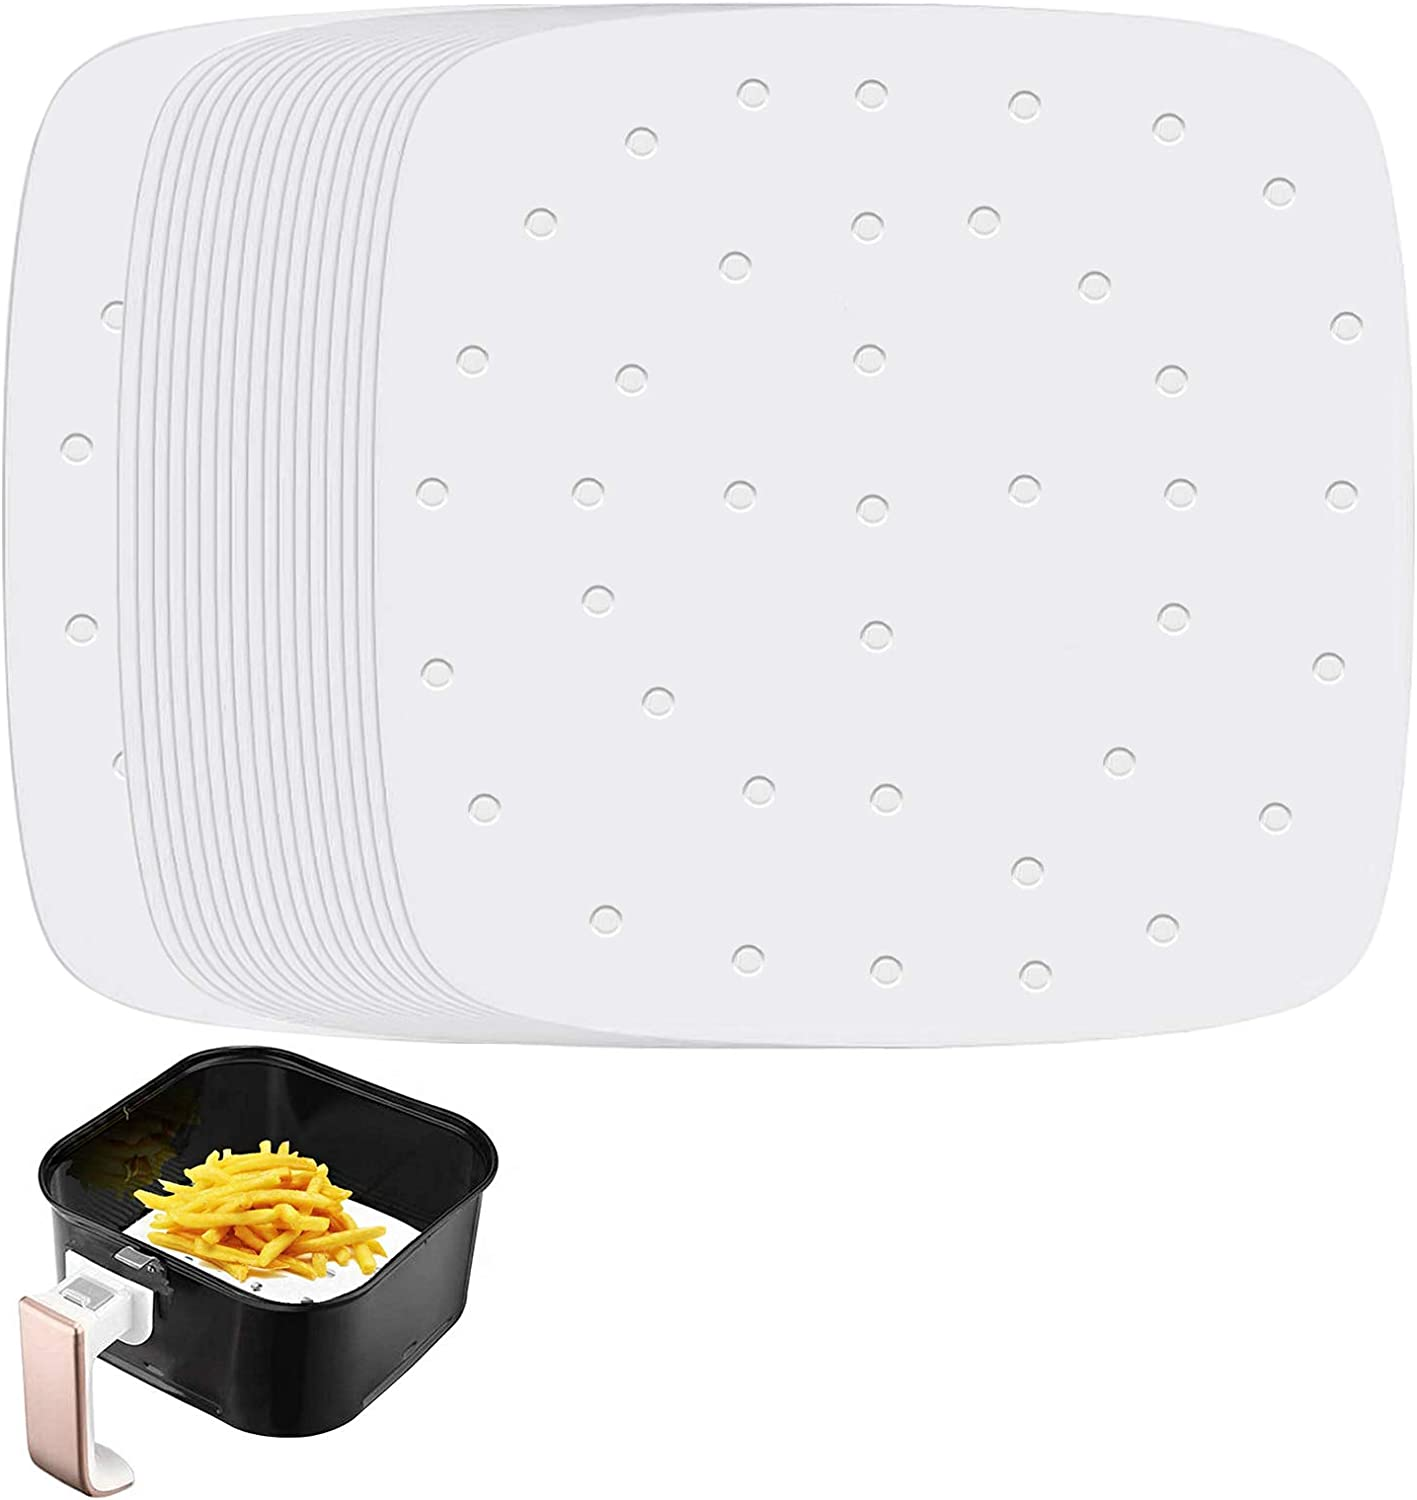 Square Air Fryer Liners, Set of 200, 9.5 Inch Square Air Fryer Parchment Paper/Perforated Parchment Paper for Air Fryer, Steaming Basket and More (5.5/6.5/7.5/8.5inch Available)